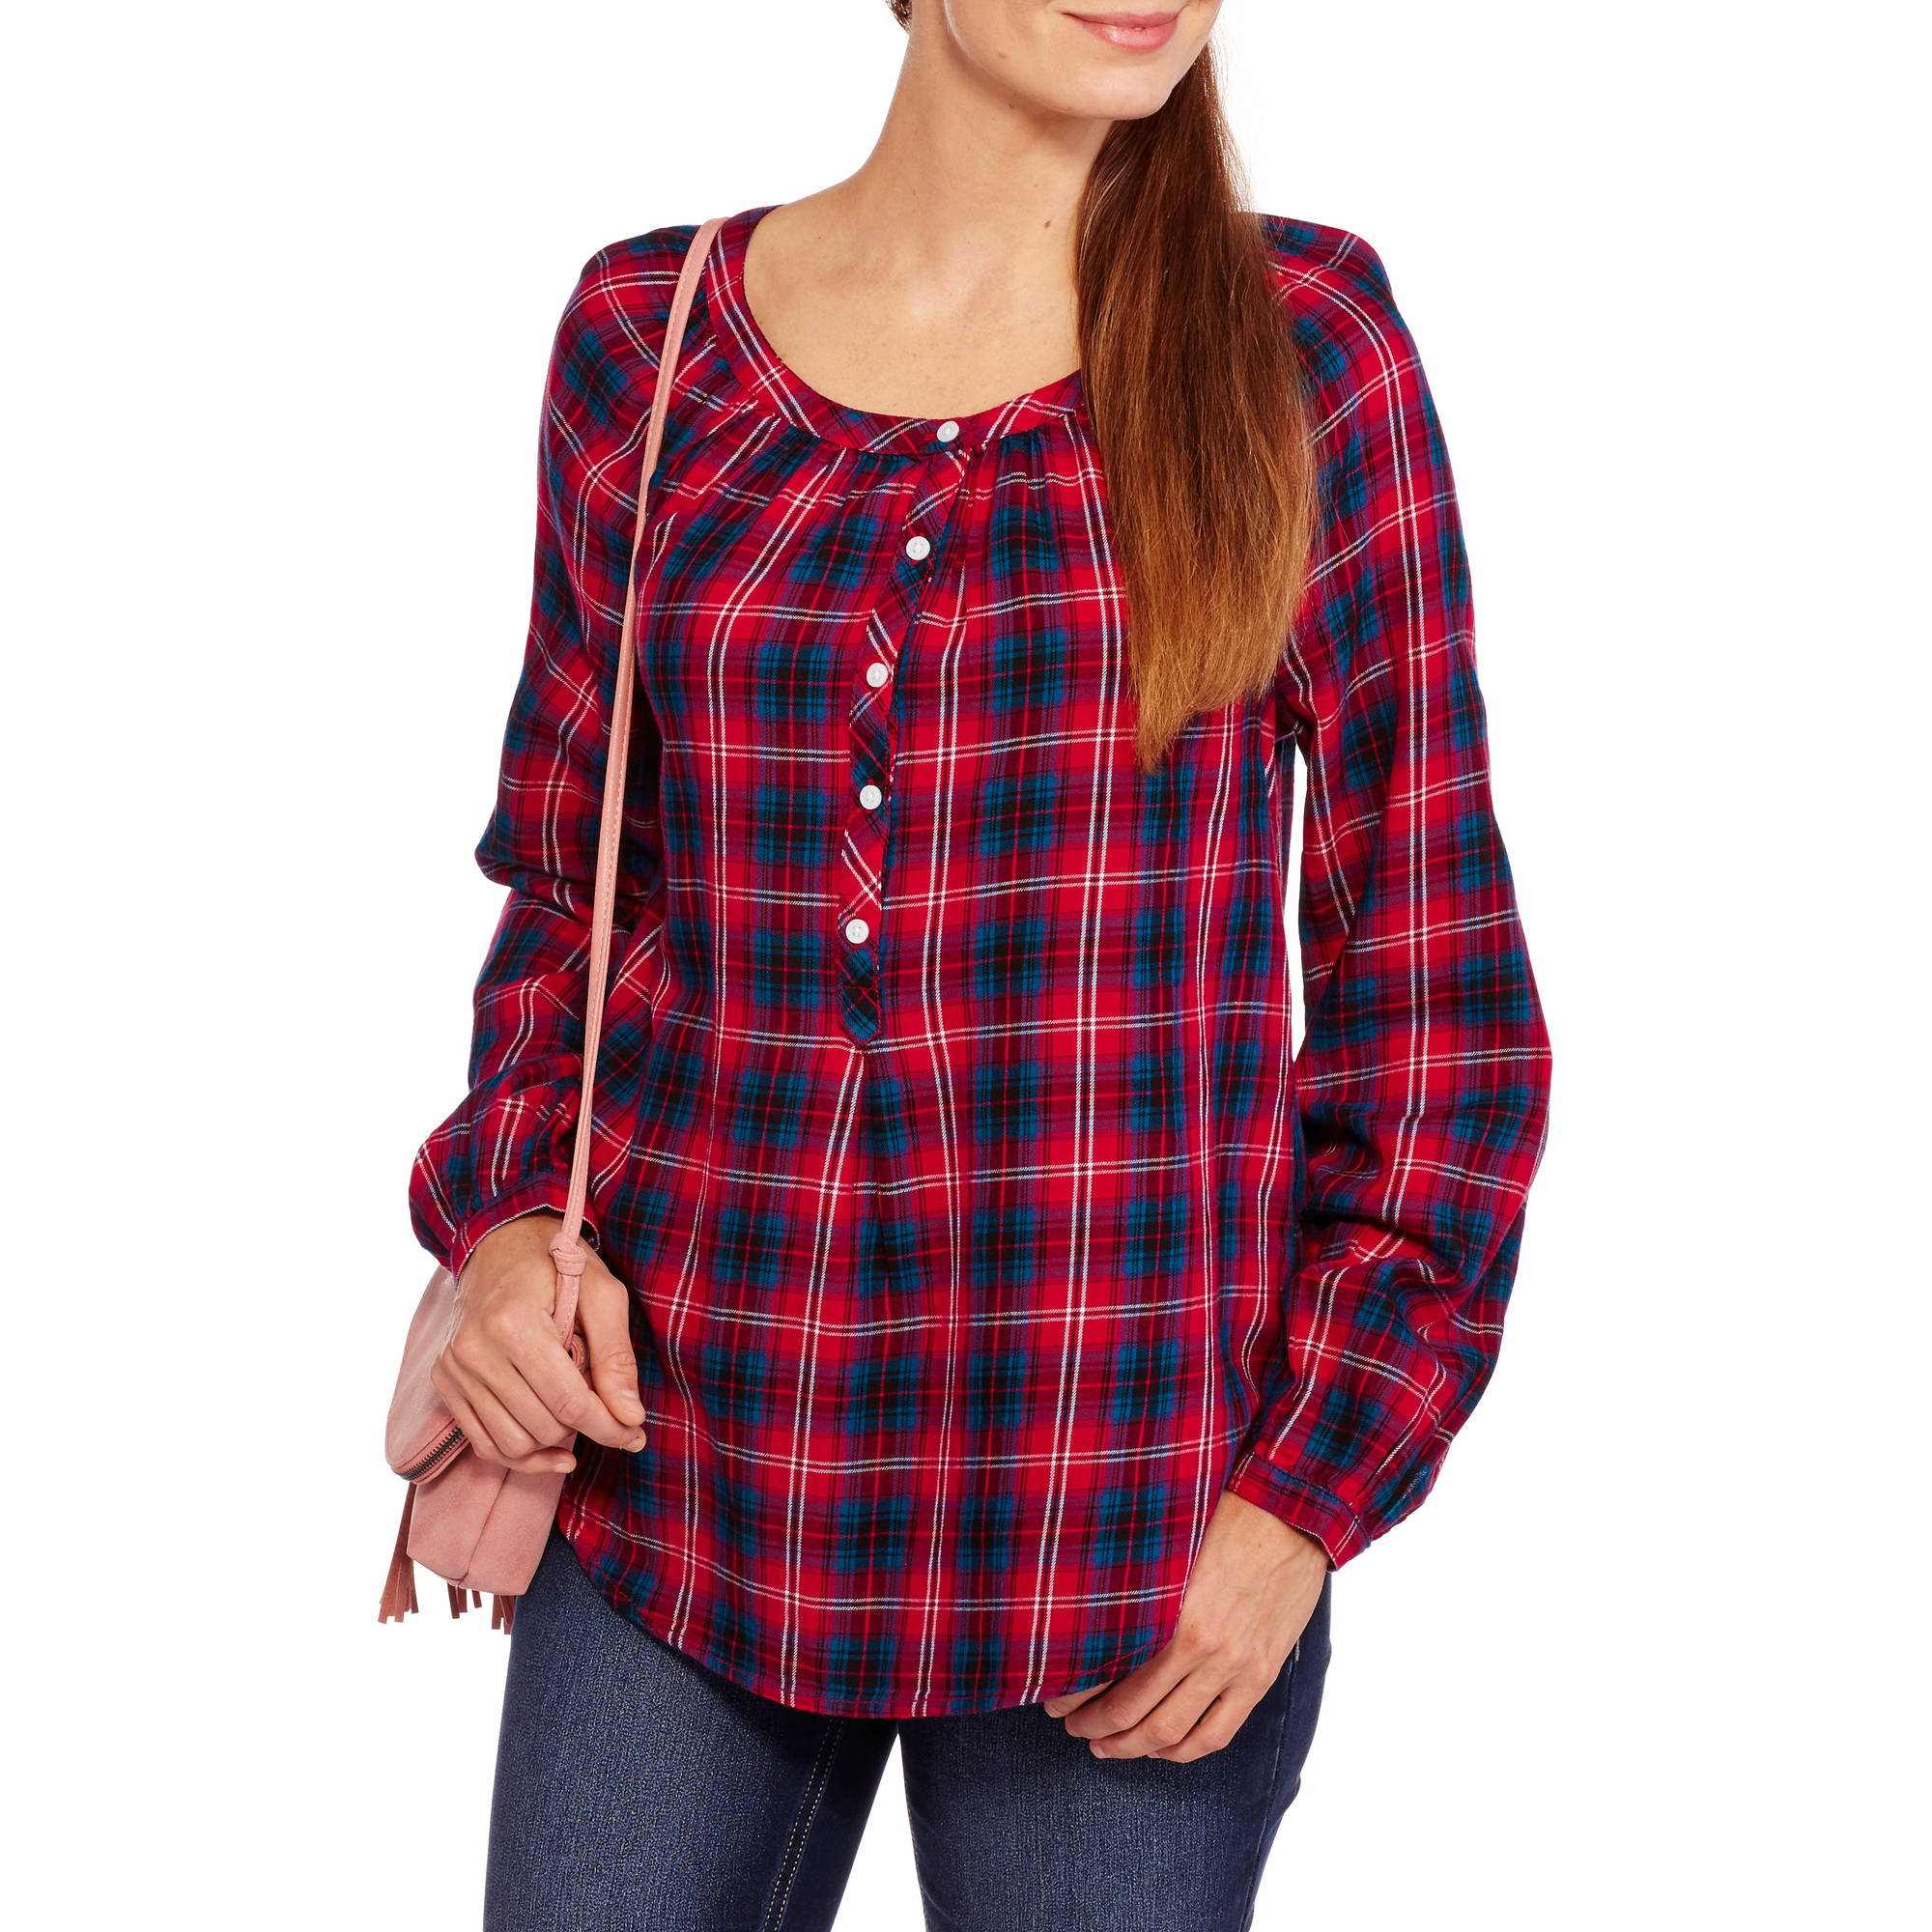 Faded Glory Women's Popover Plaid Shirt